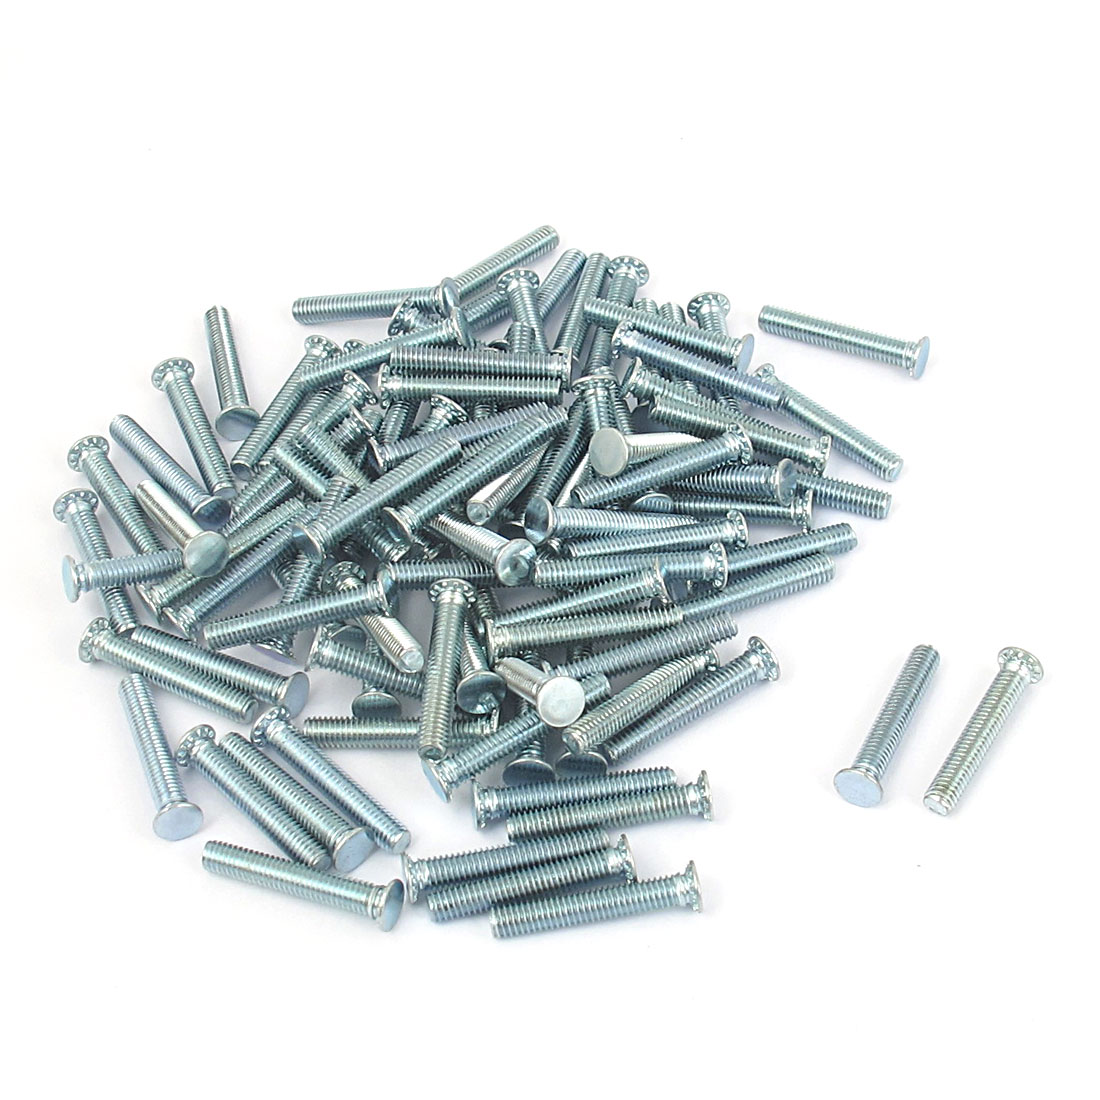 M3x18mm Zinc Plated Flush Head Self Clinching Threaded Studs Fastener 100pcs